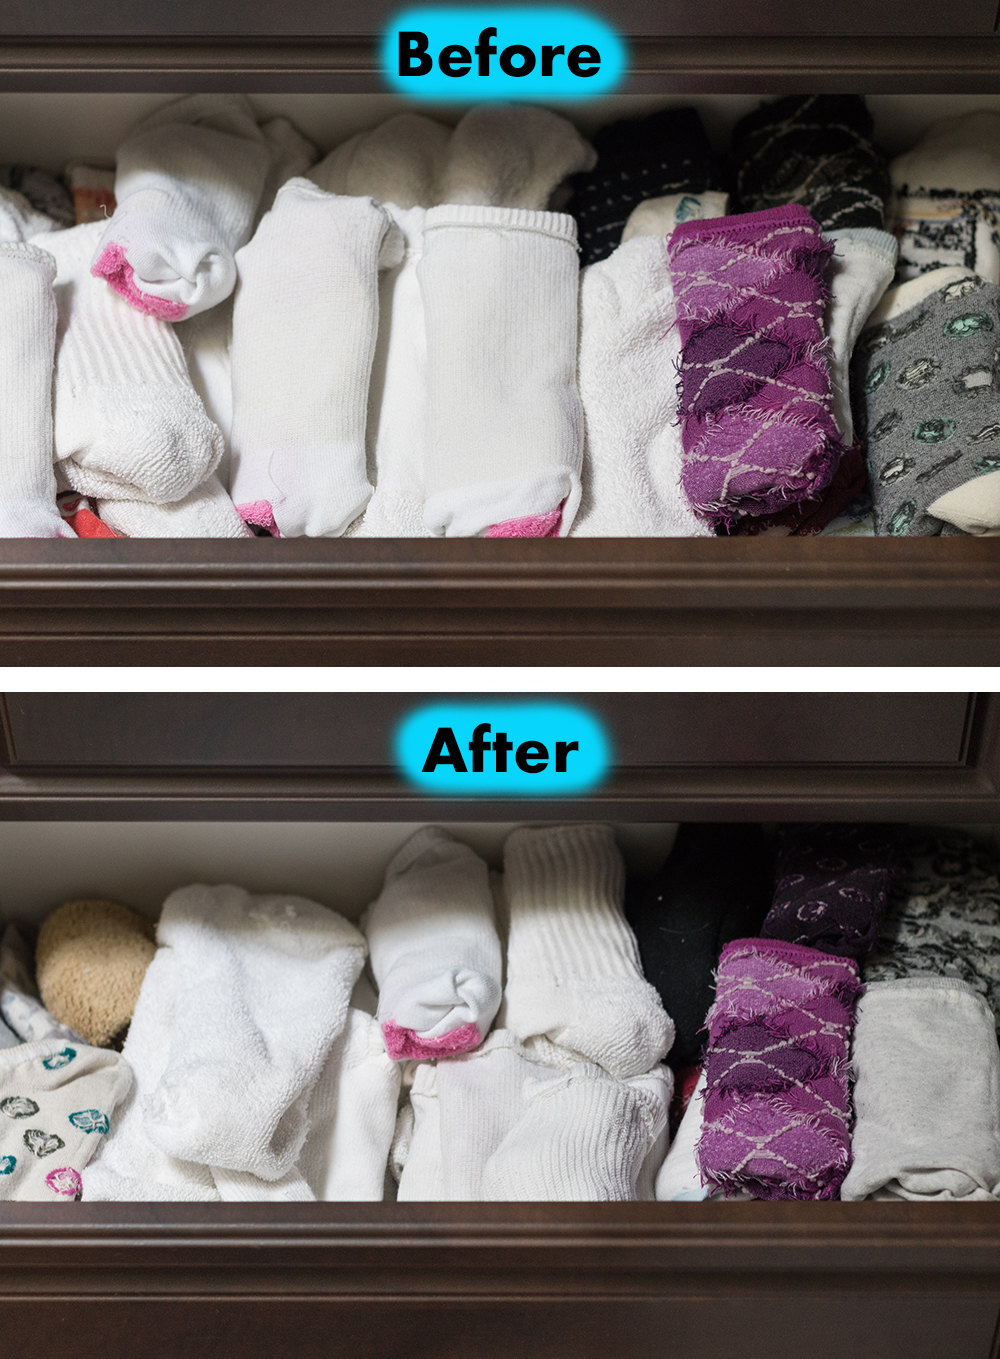 10 Quick Decluttering Projects to Organize Your Home - Sock Drawer Organization | http://www.roseclearfield.com